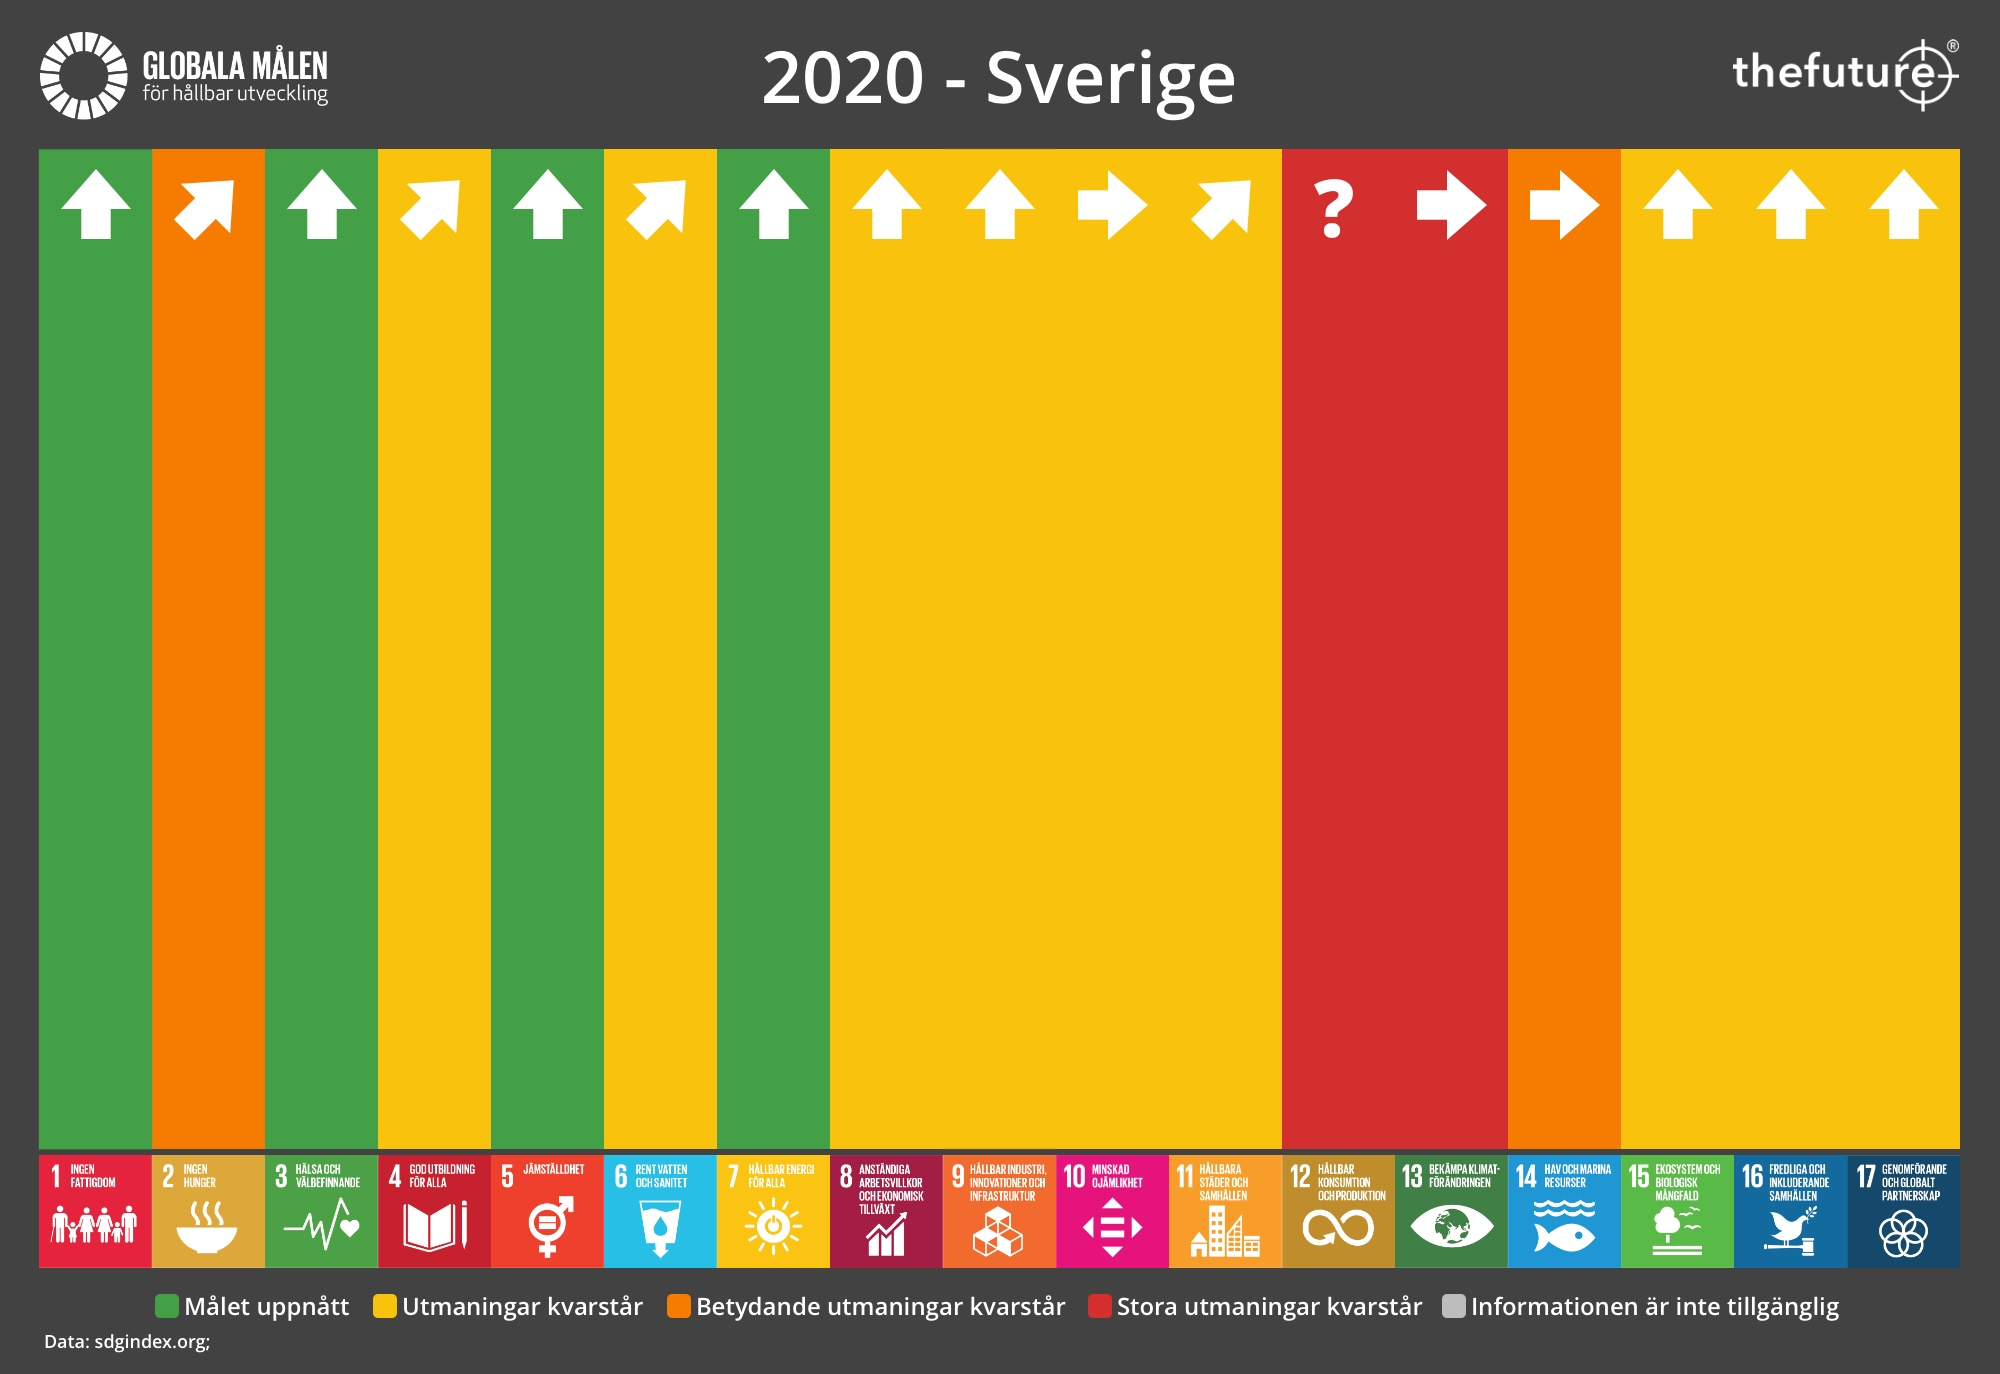 thefuture, blogg, SDG-Progress-2020-Sweden